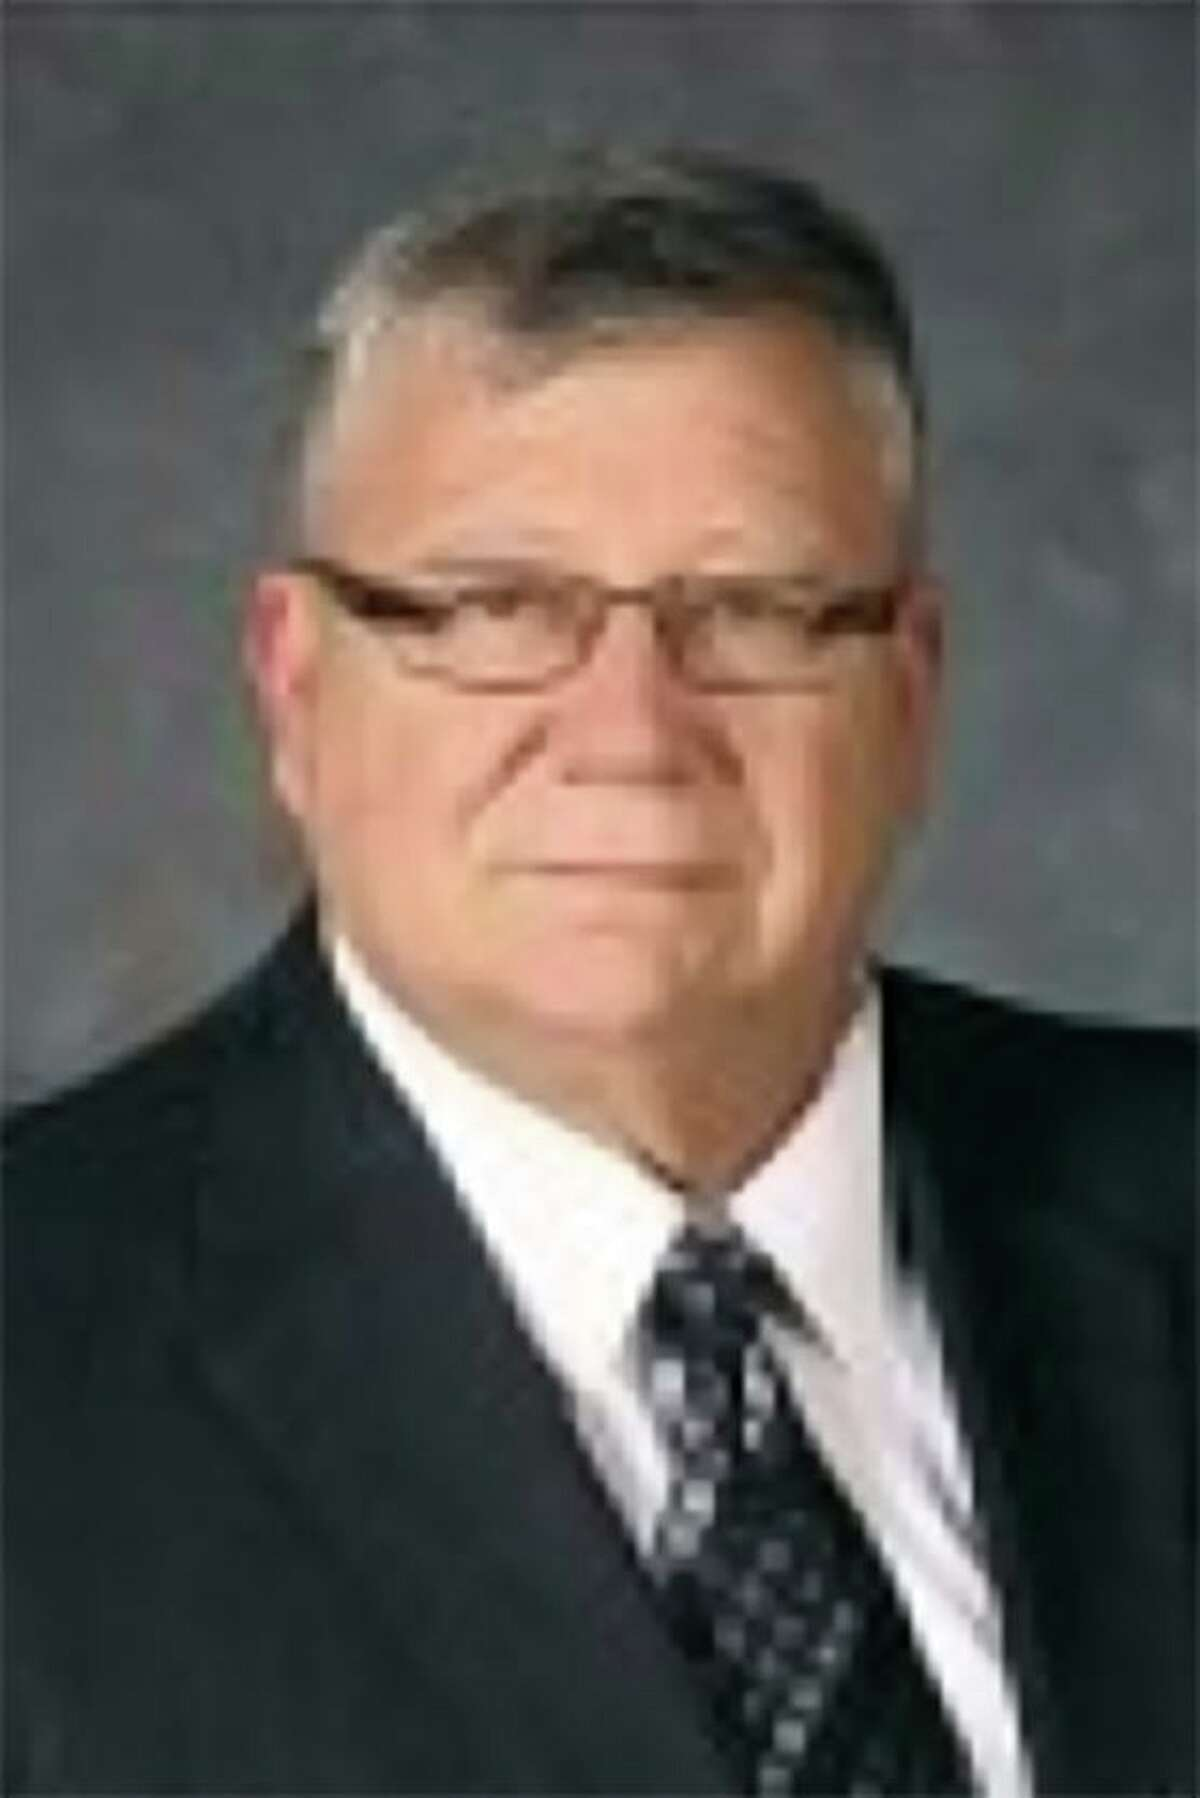 Joseph M. Guerra, the current secretary on the Edgewood ISD board of trustees, is running unopposed to keep his seat.